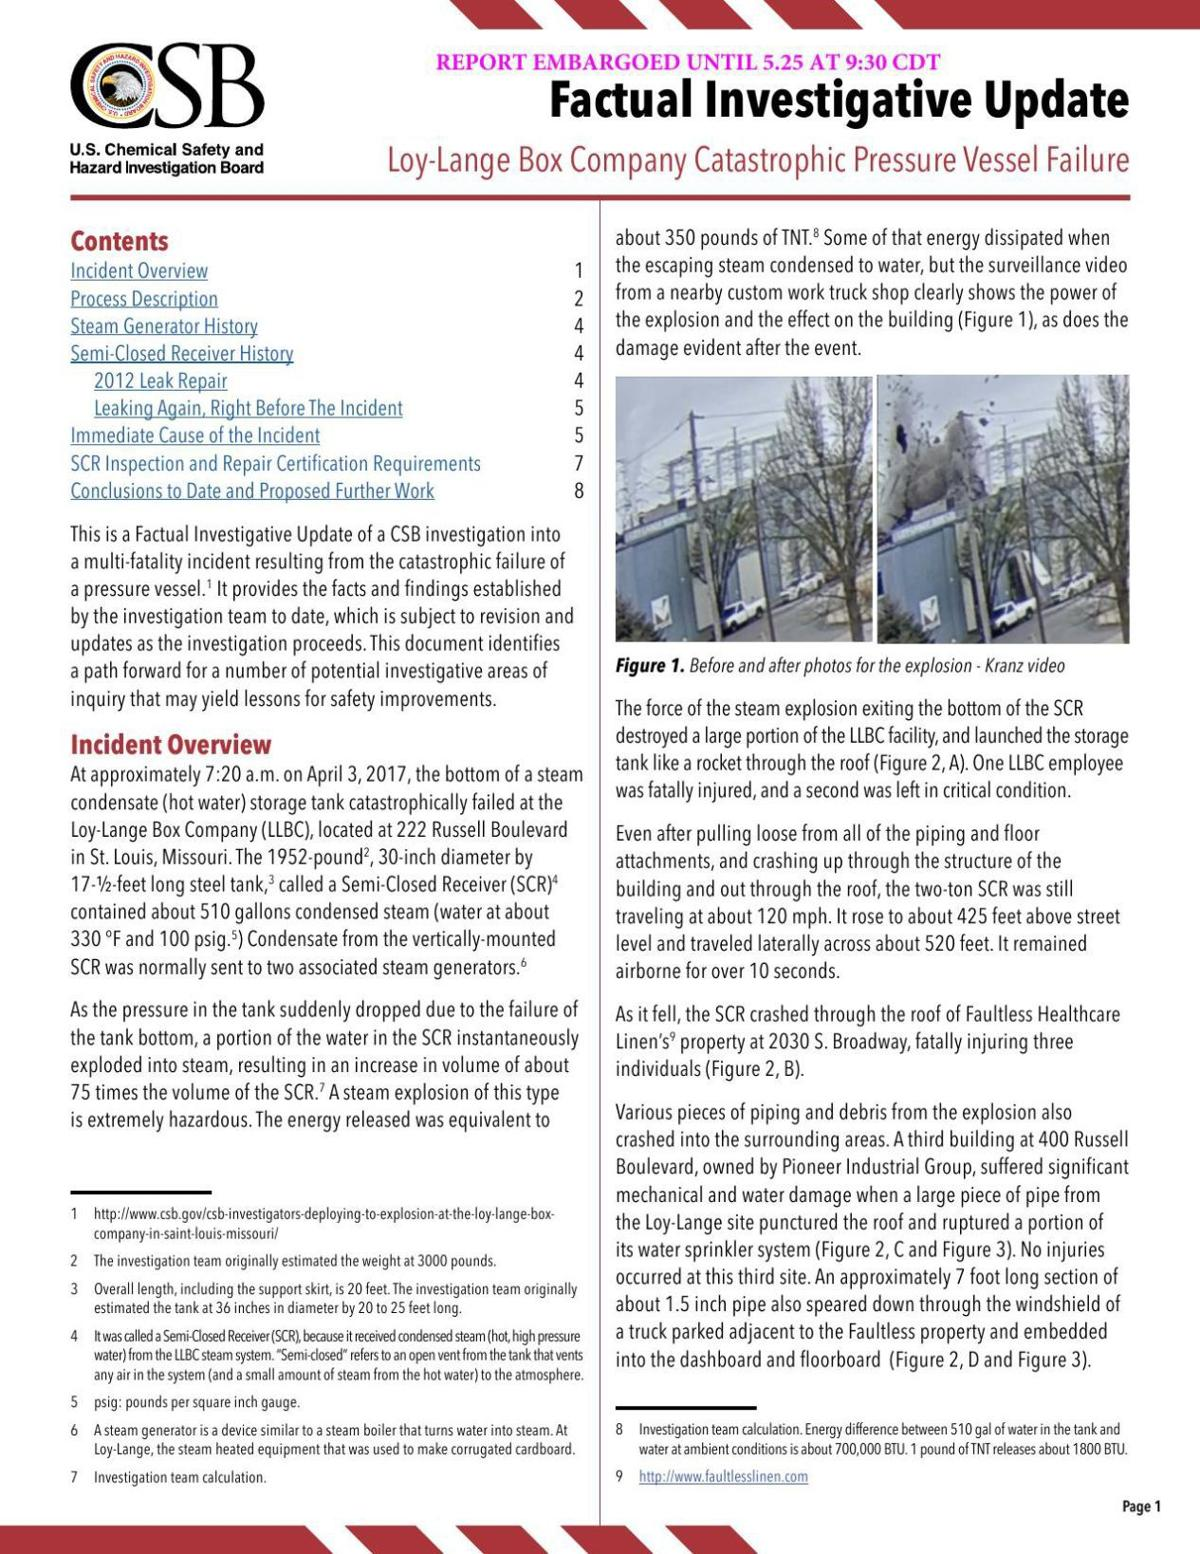 Read the investigative update from the U.S. Chemical Safety and Hazard Investigation Board